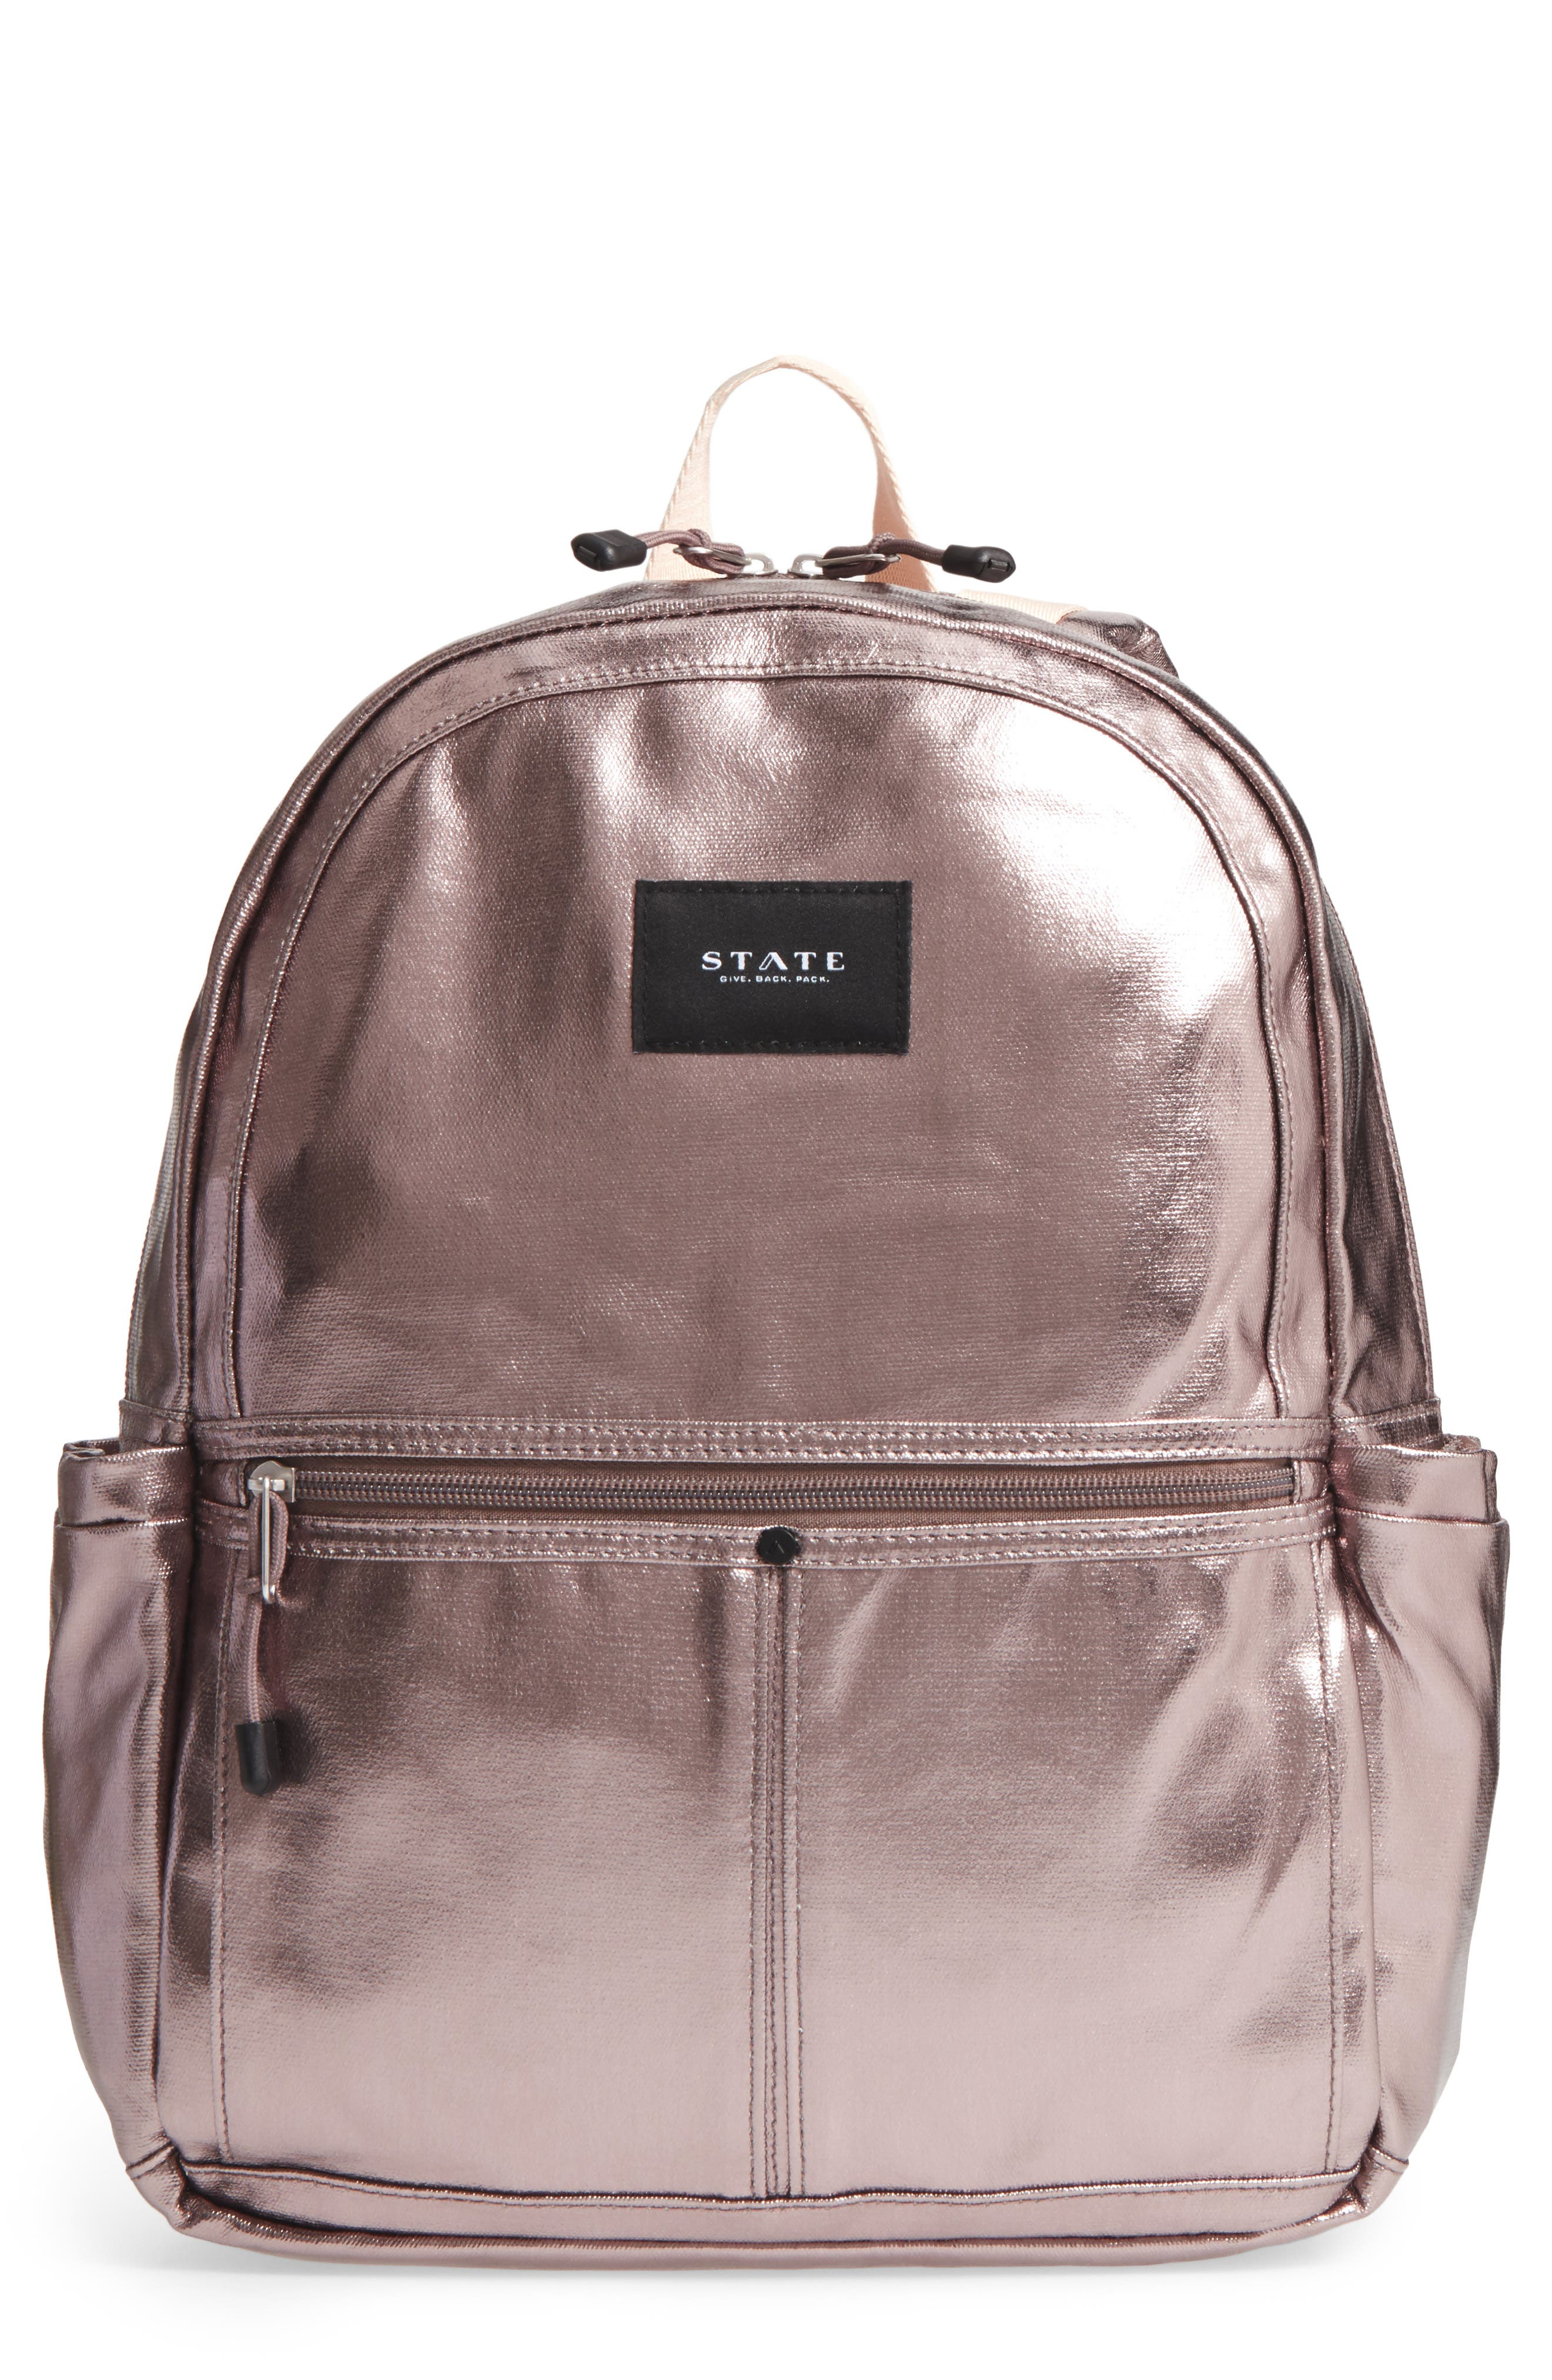 STATE BAGS Downtown Kane Backpack